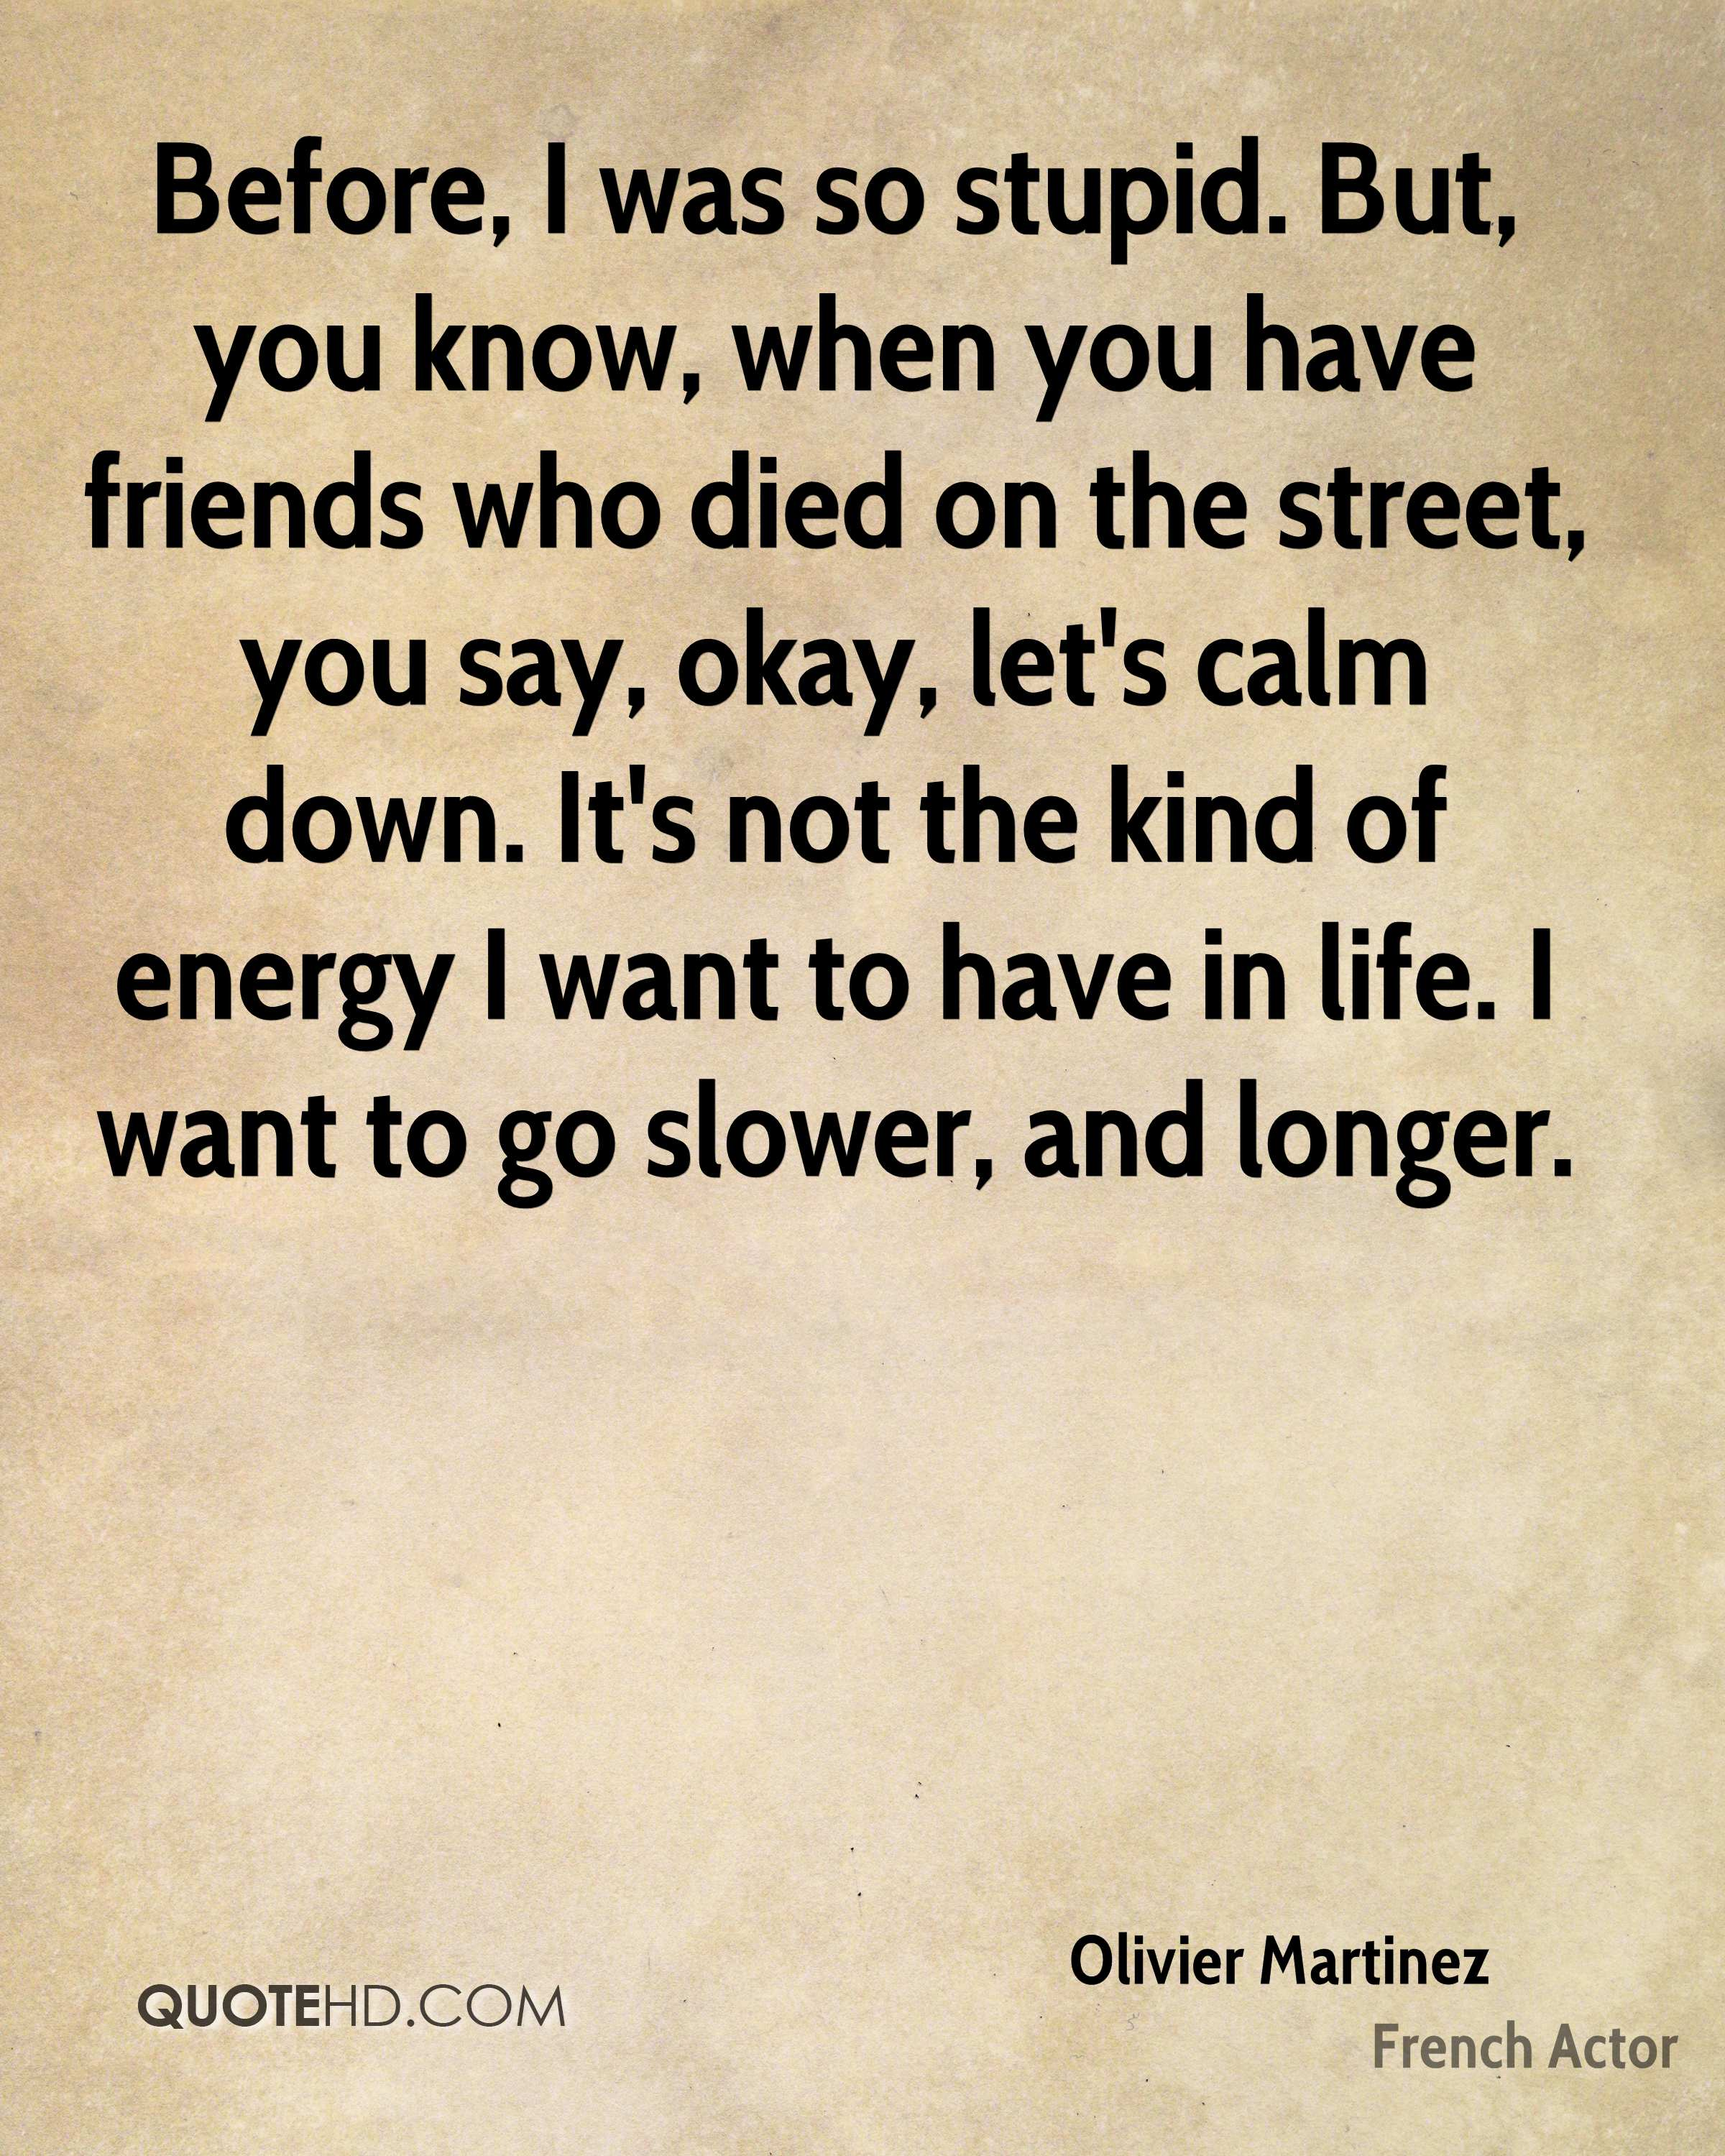 Before, I was so stupid. But, you know, when you have friends who died on the street, you say, okay, let's calm down. It's not the kind of energy I want to have in life. I want to go slower, and longer.